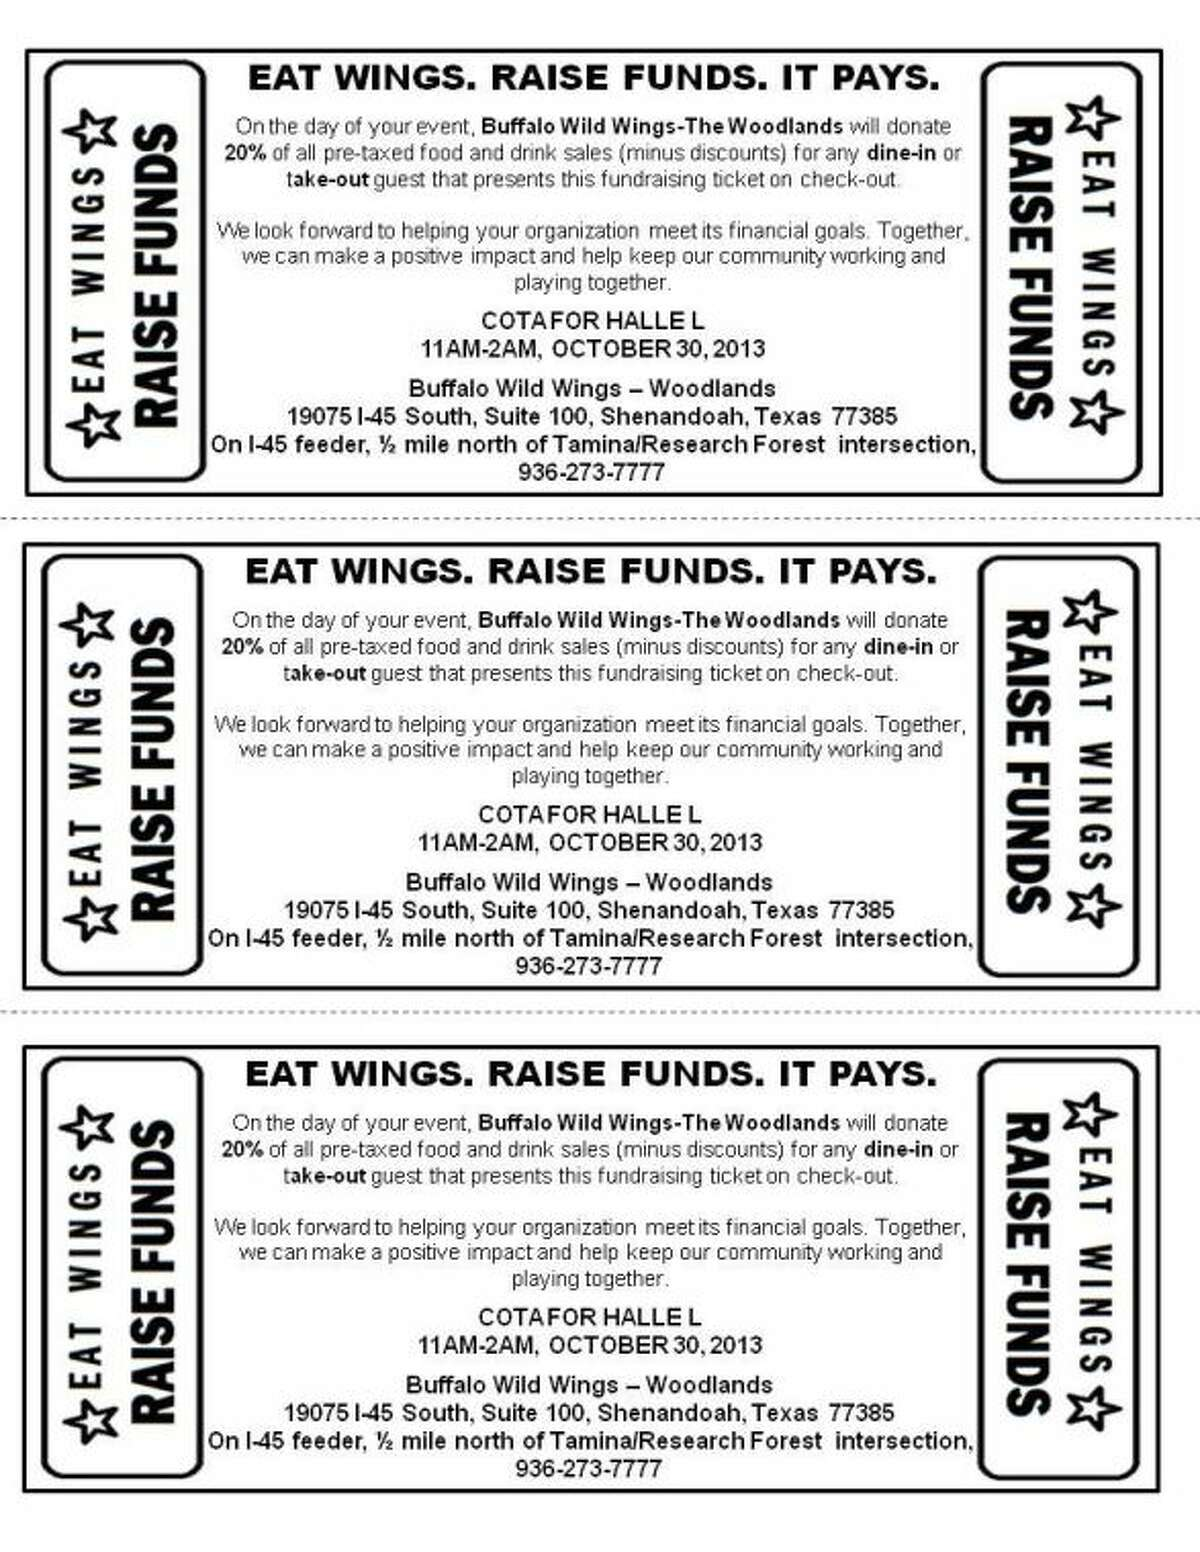 Cut, print or take a picture of this coupon to take to Buffalo Wild Wings in Shenandoah today.